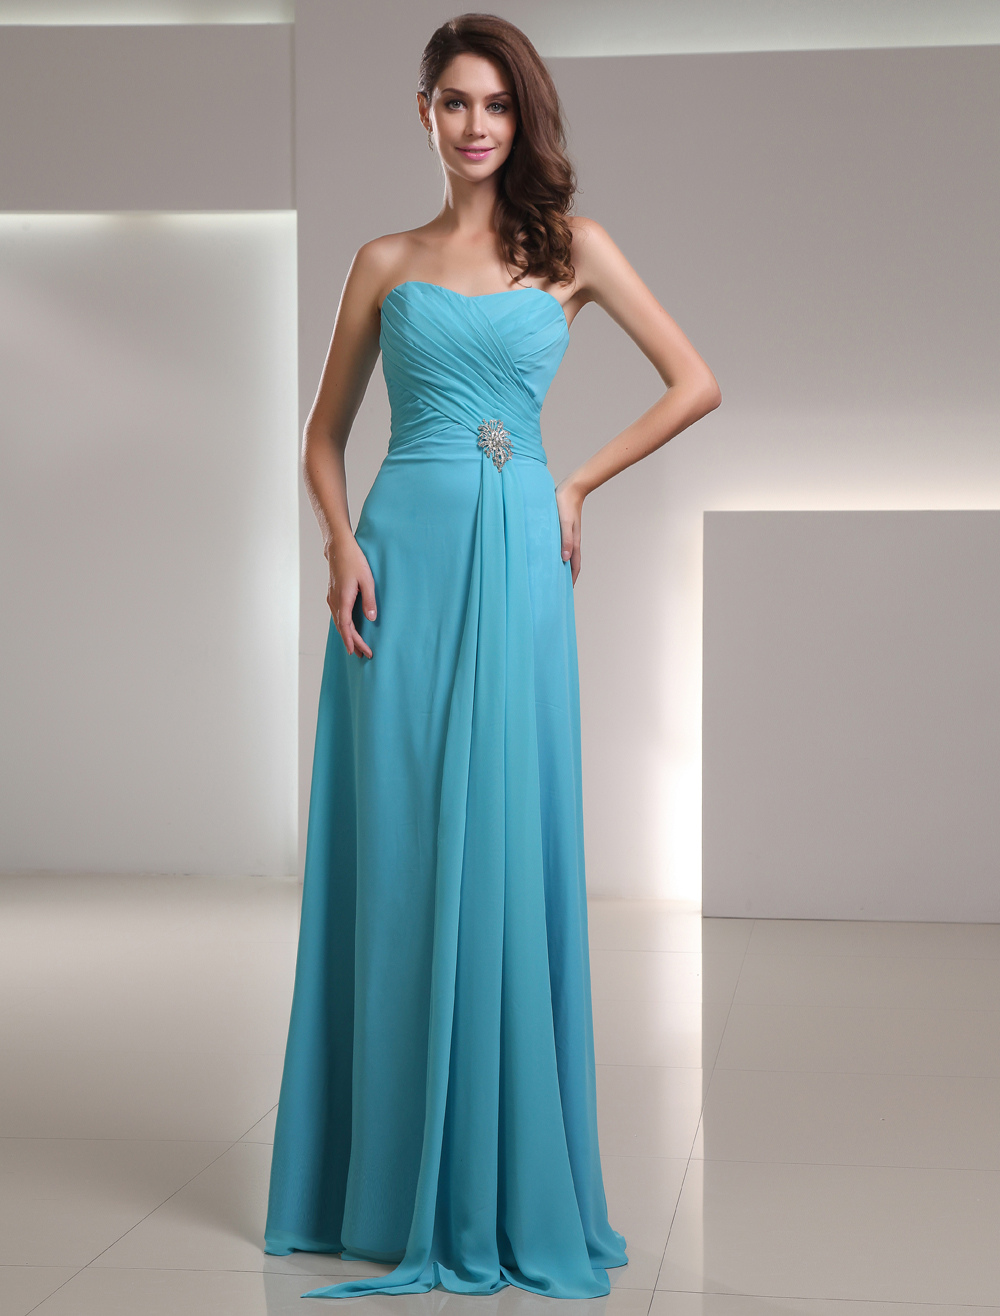 Long Bridesmaid Dress Chiffon Aqua Sweetheart Strapless Floor Length Wedding Party Dress